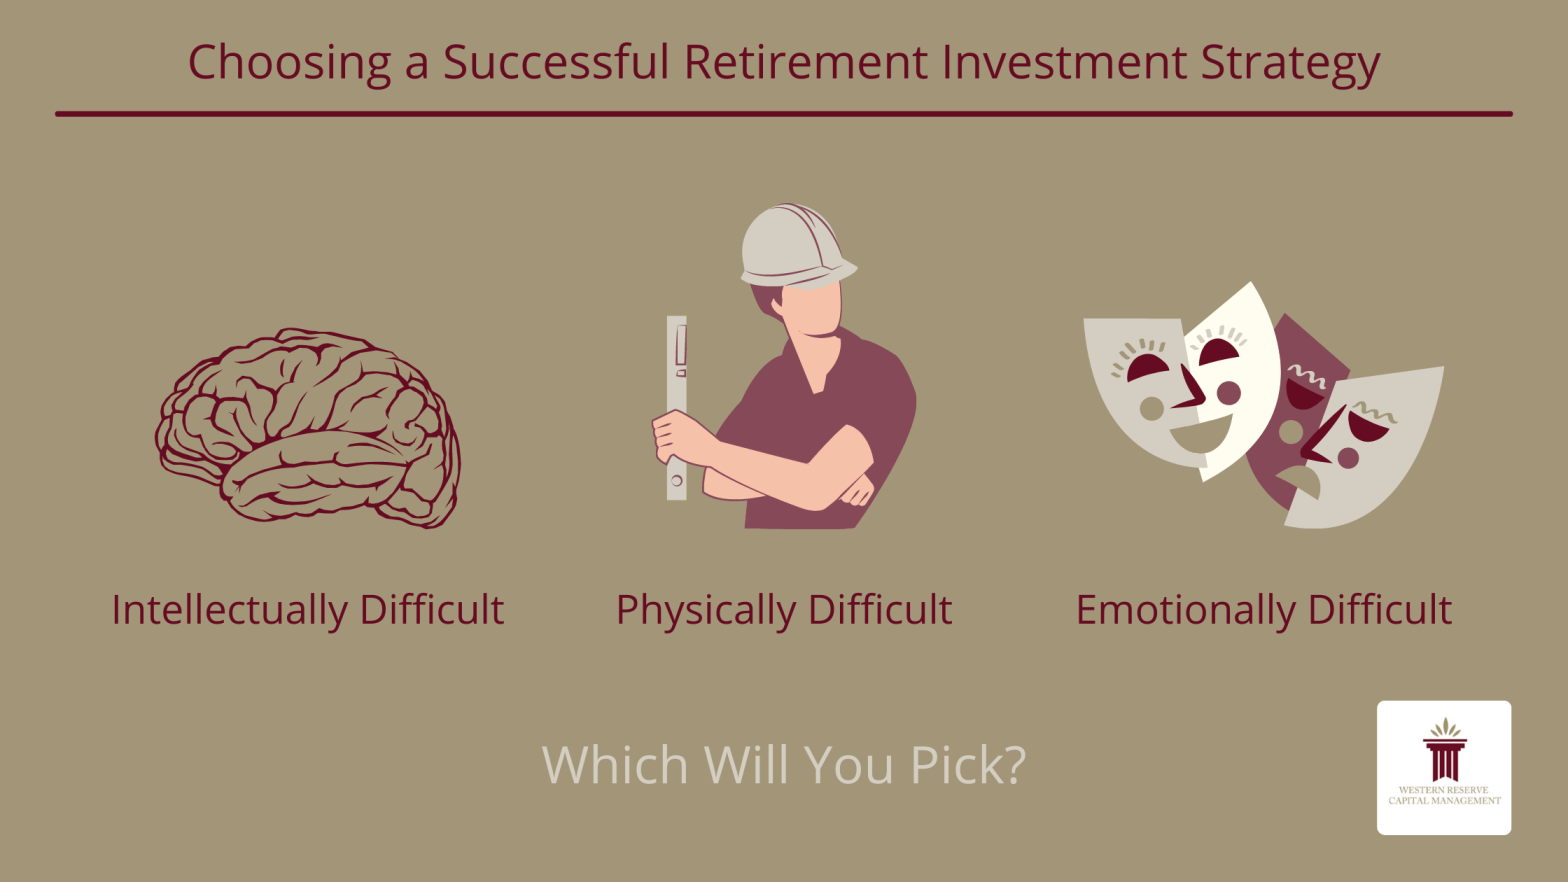 Choosing a Successful Retirement Investment Strategy